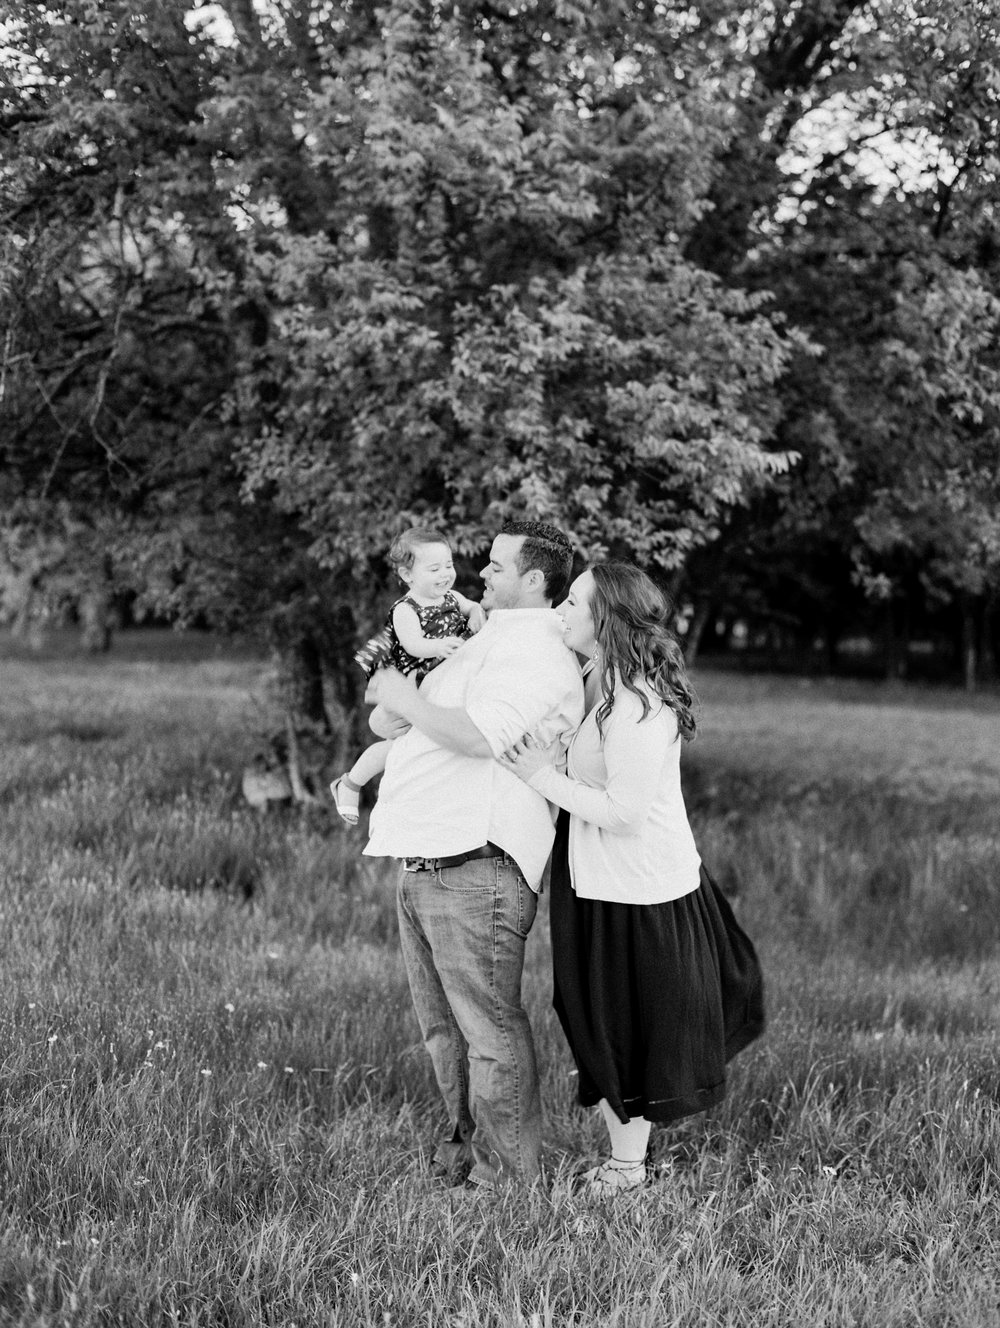 Spring Family Session on Film | What To Wear To Your Family Session | Dallas / Ft. Worth Family Photography | Britni Dean Photography | britnidean.com